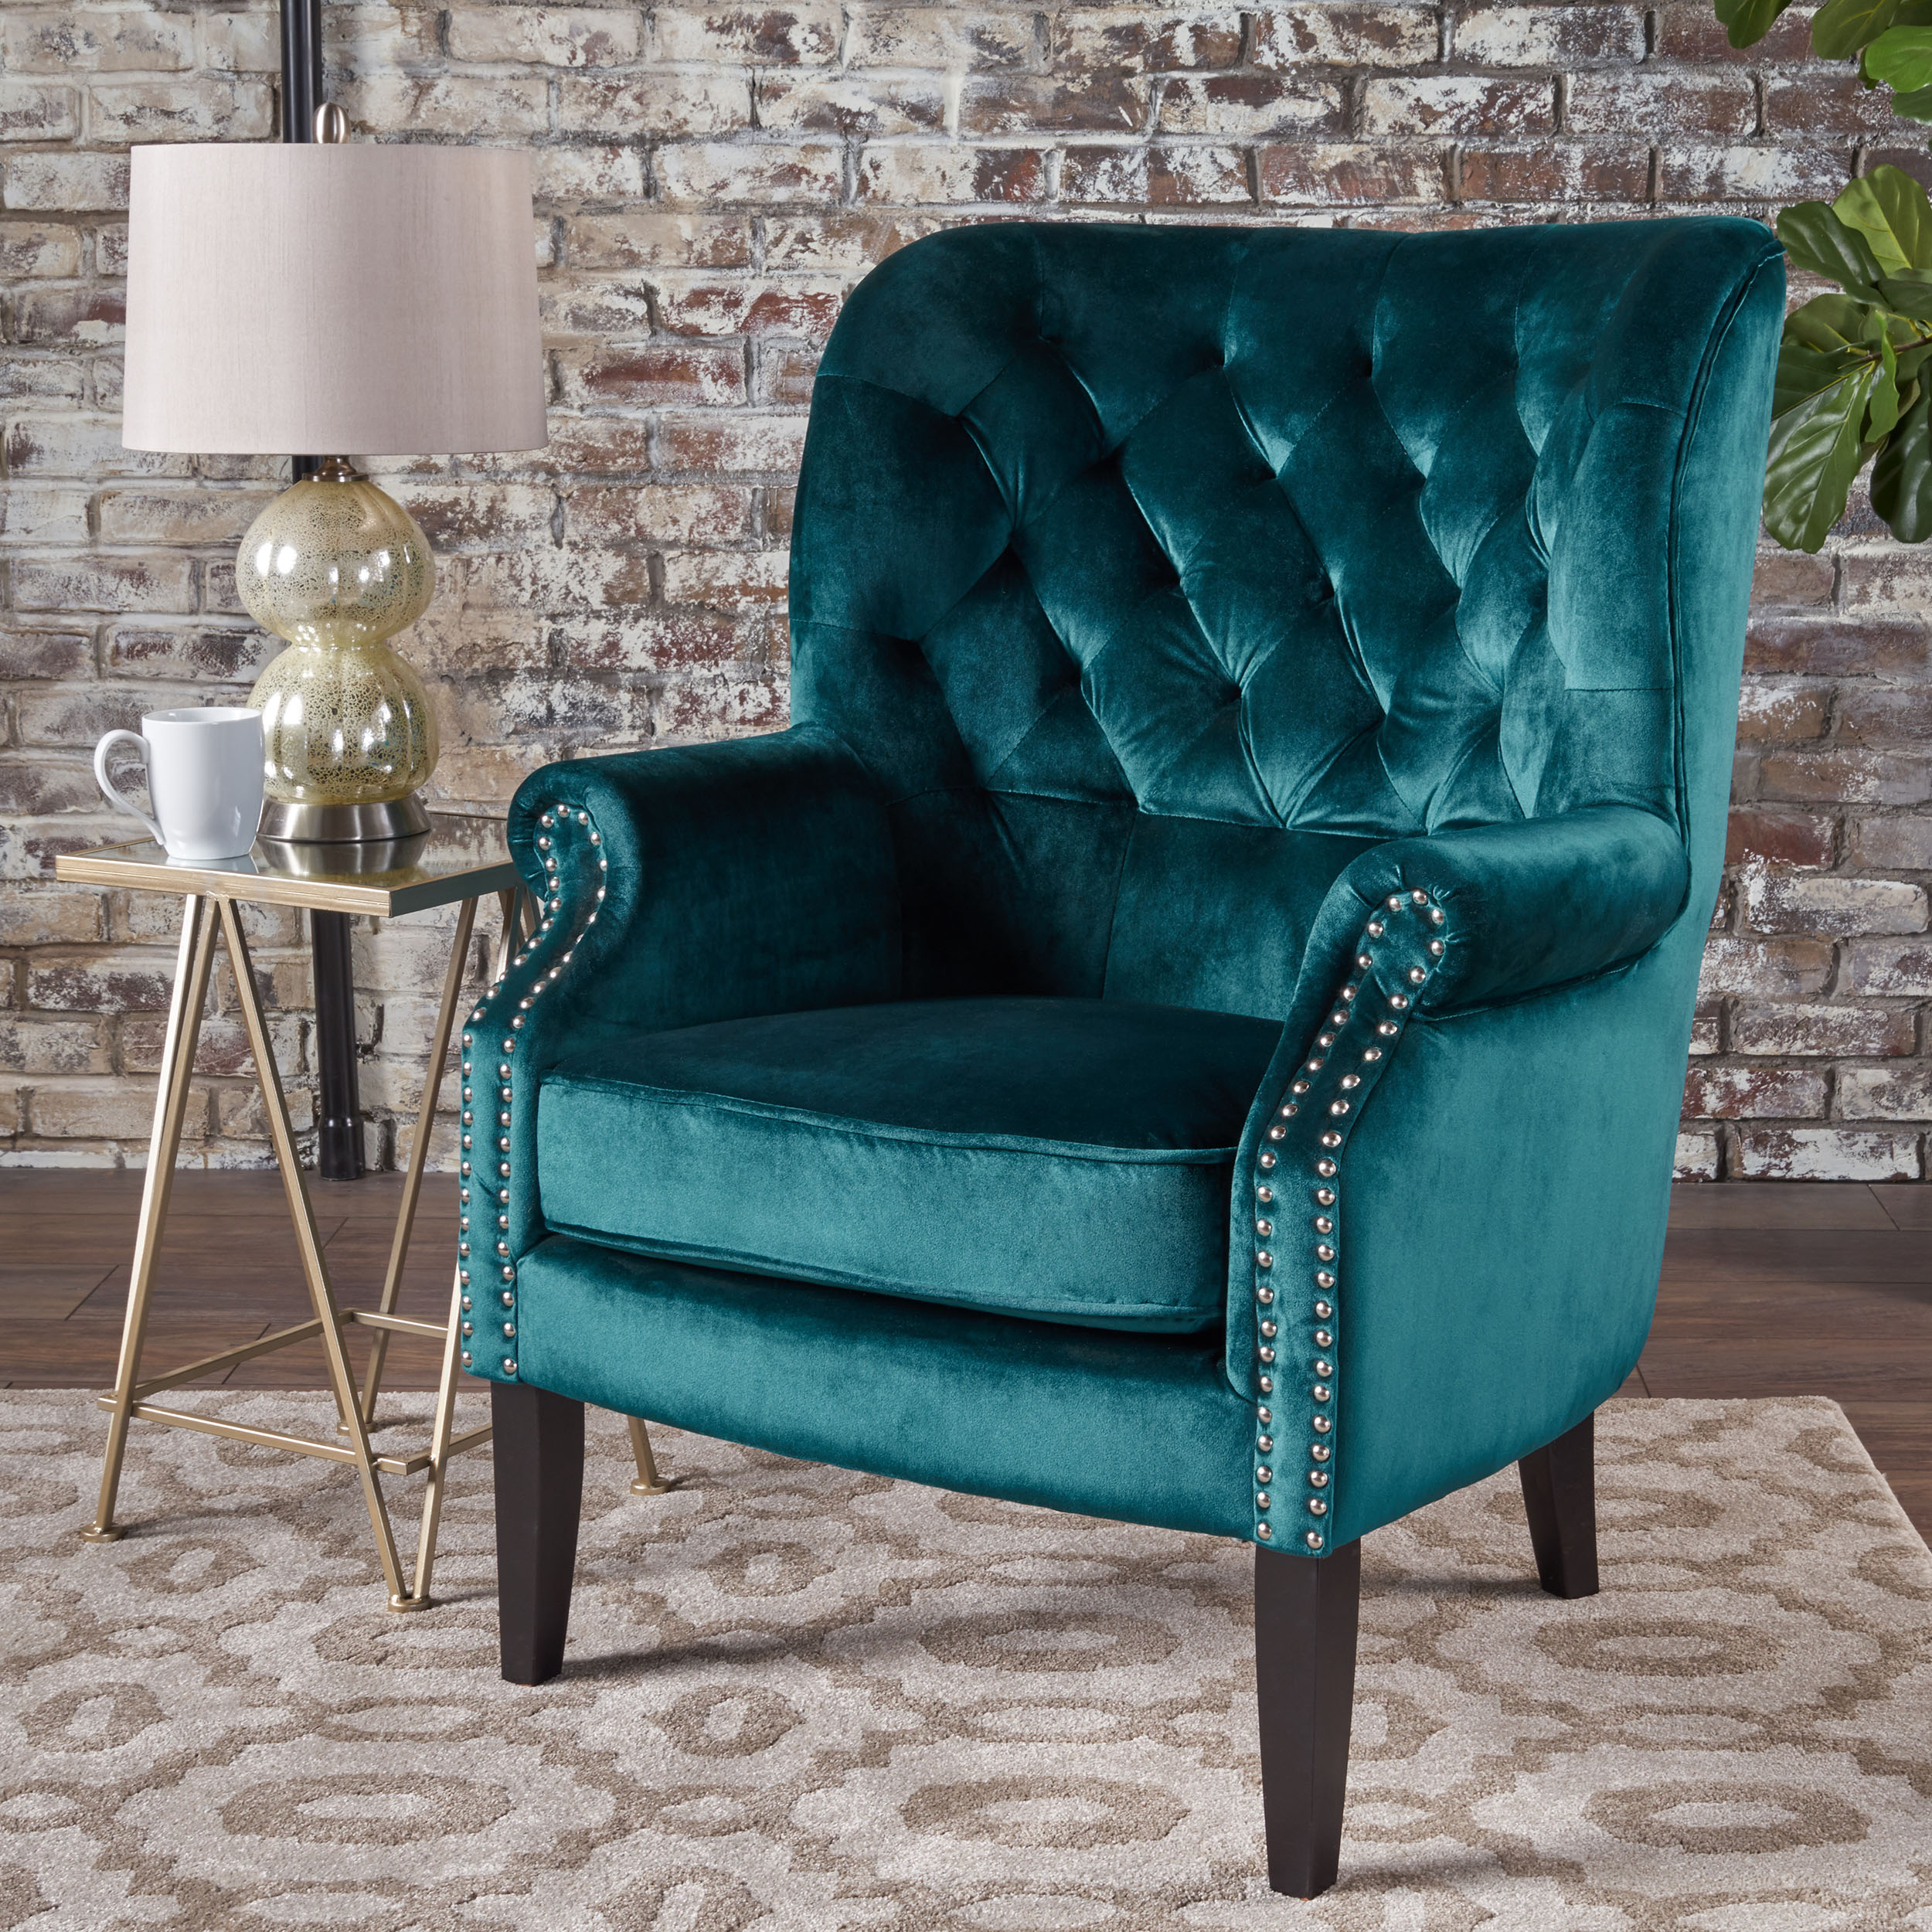 Inspiration about Details About Teal Velvet Trim Accent Chair Lounge Living Room Bedroom Club  Tufted Traditional In Velvet Tufted Accent Chairs (#9 of 20)